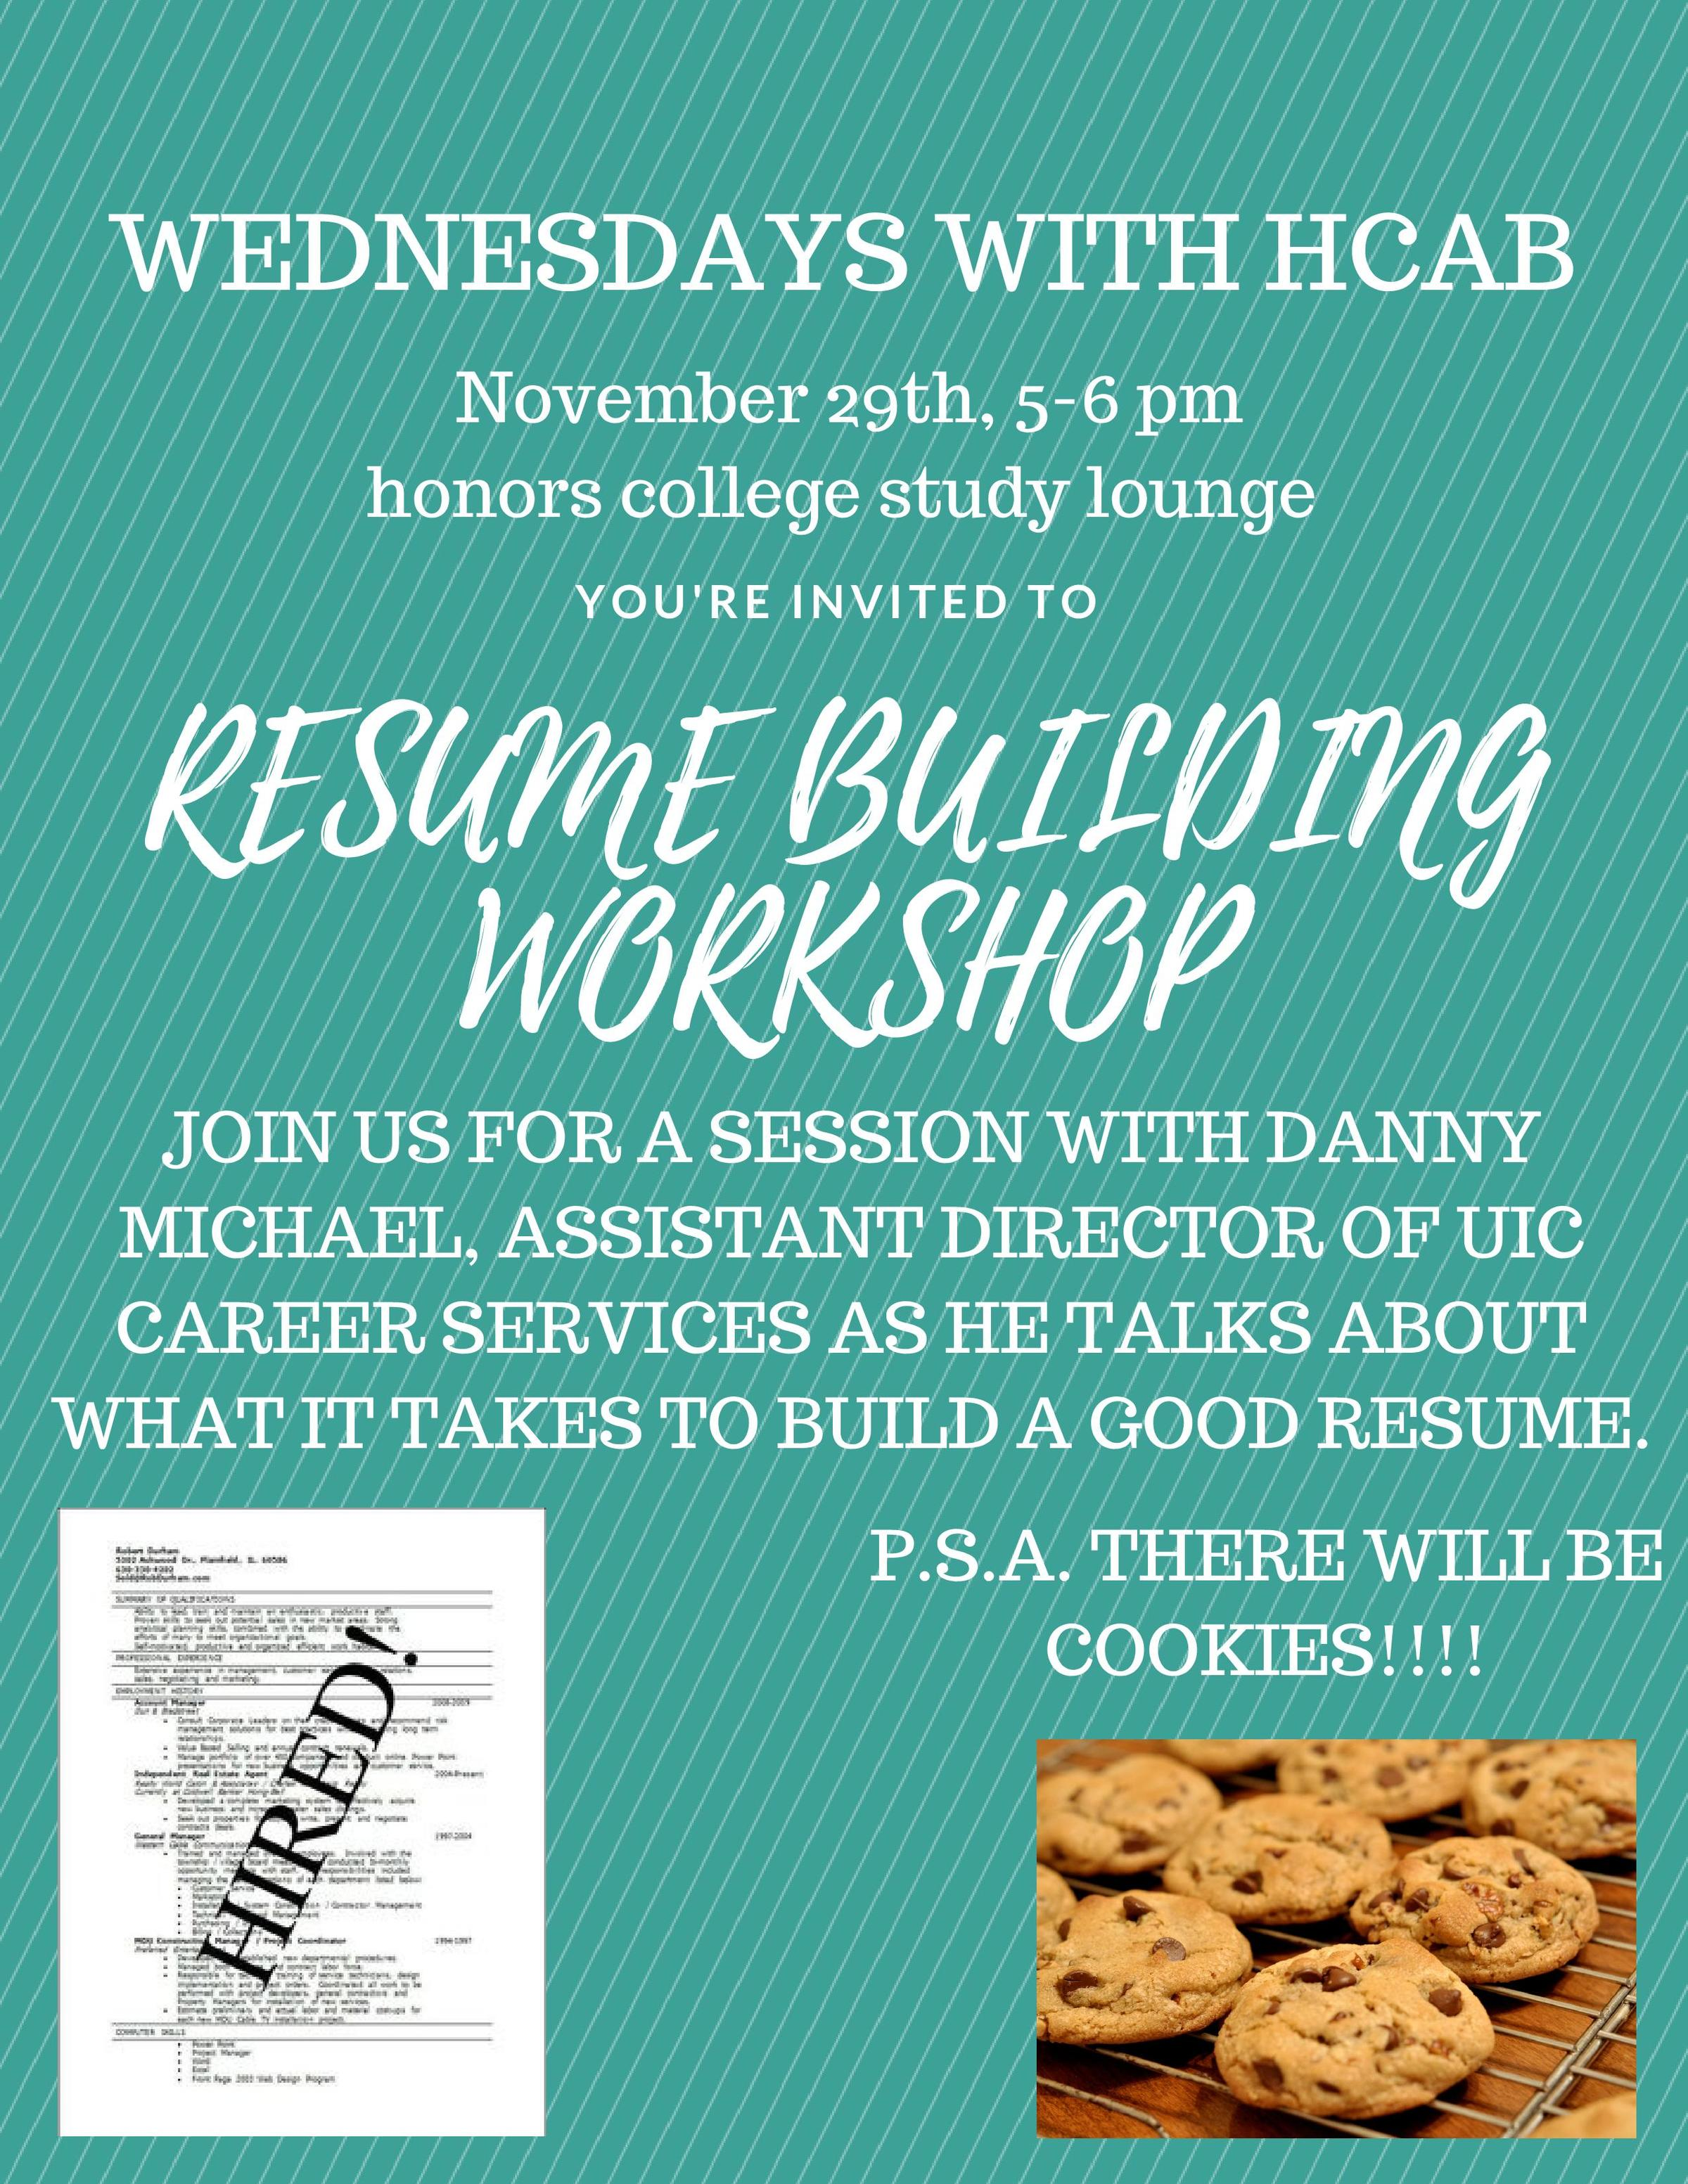 Wednesdays With Hcab Resume Building Workshop Nov 29 At 5pm Uic